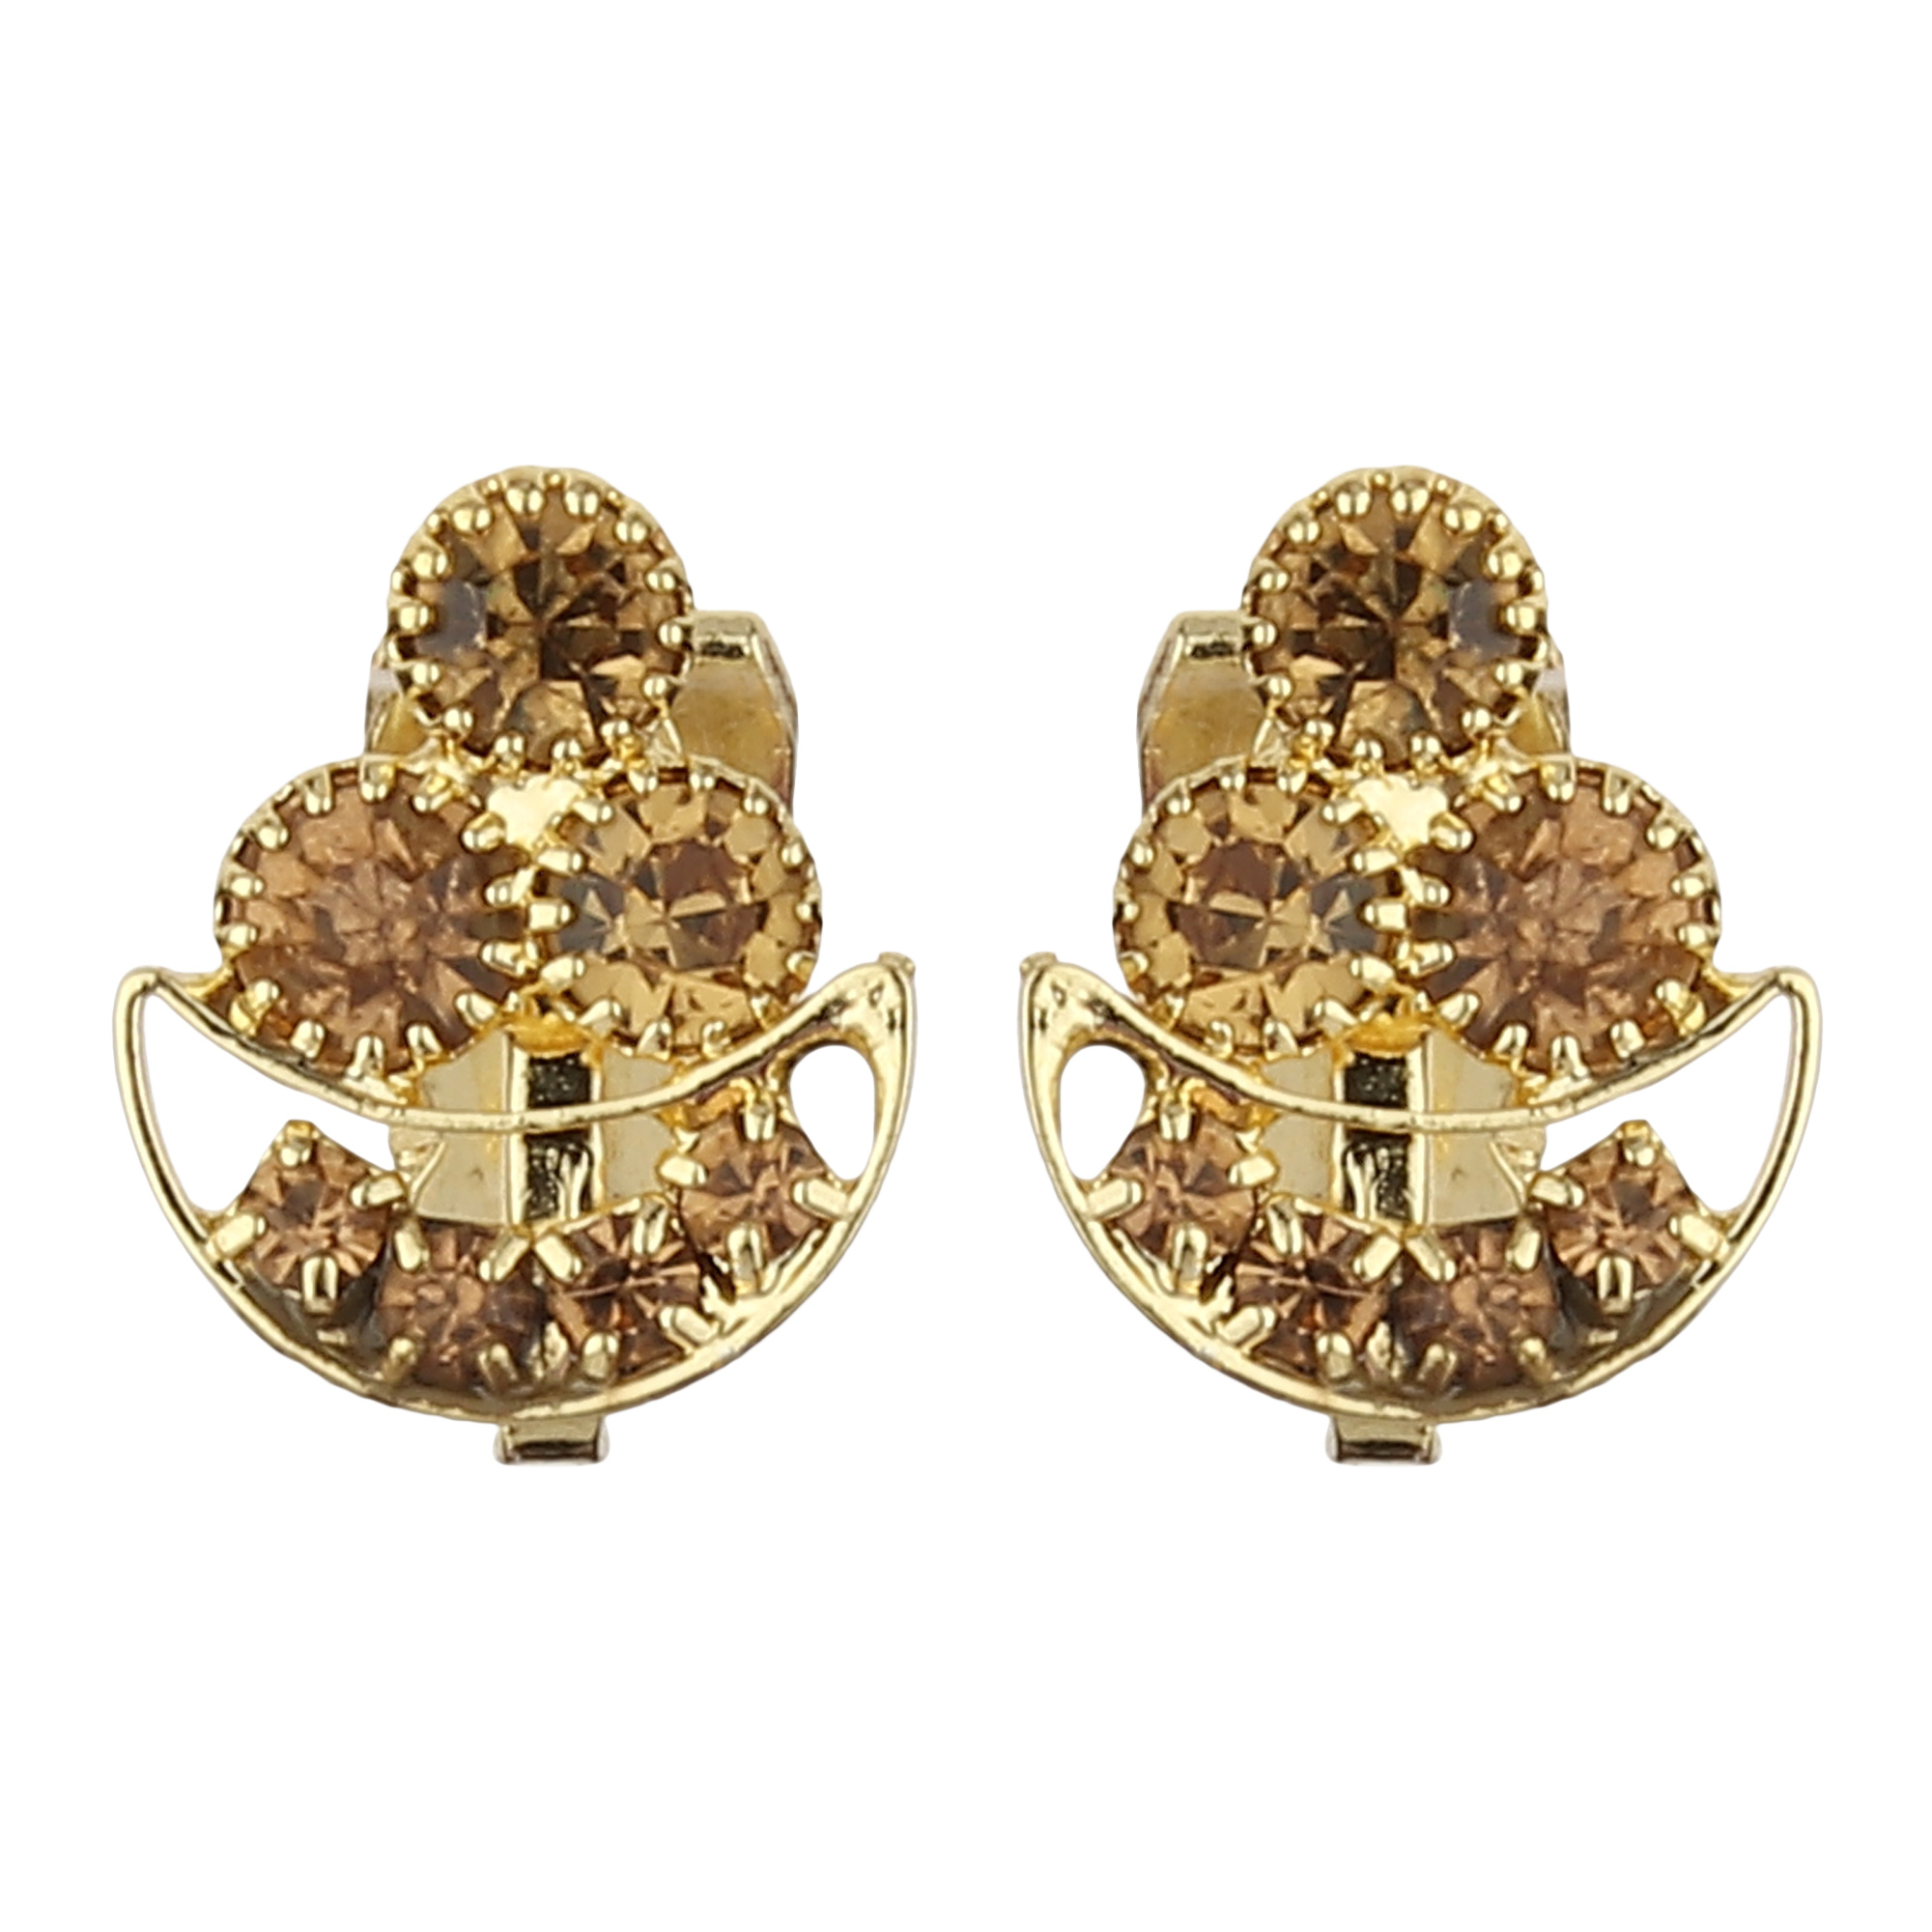 FirstBlush | FirstBlush Clip On Earrings for Non Piearced Ears for Women & Girls; Plating: Gold; Color: Gold; Size: 15 X 10mm; Wt.: 2gm. (MIEC104M099)